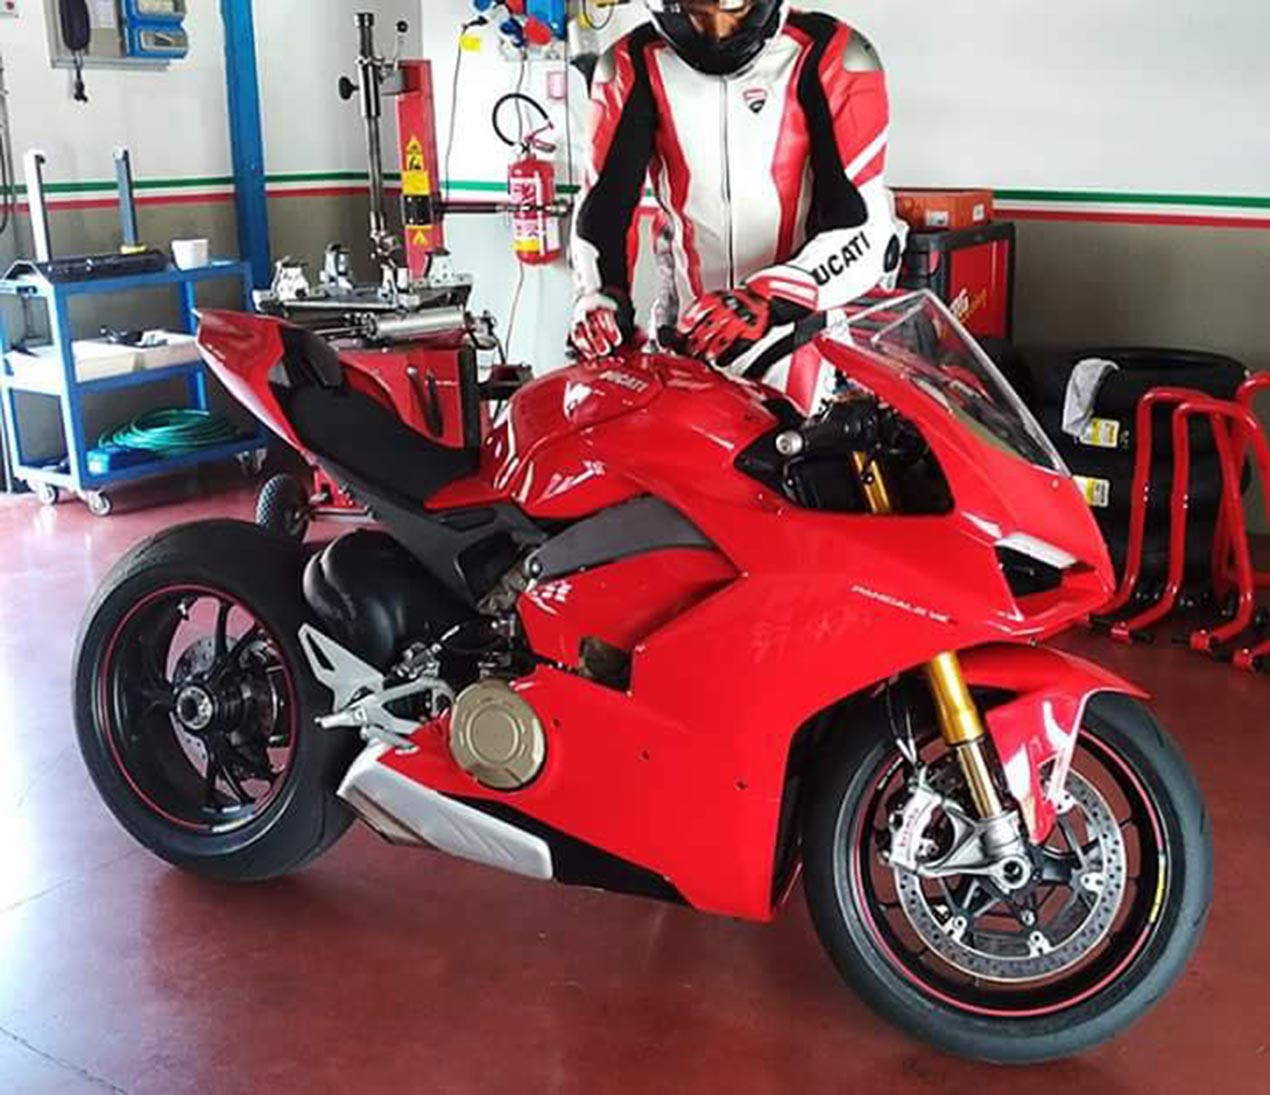 ducati panigale v4 spotted in photo - asphalt & rubber